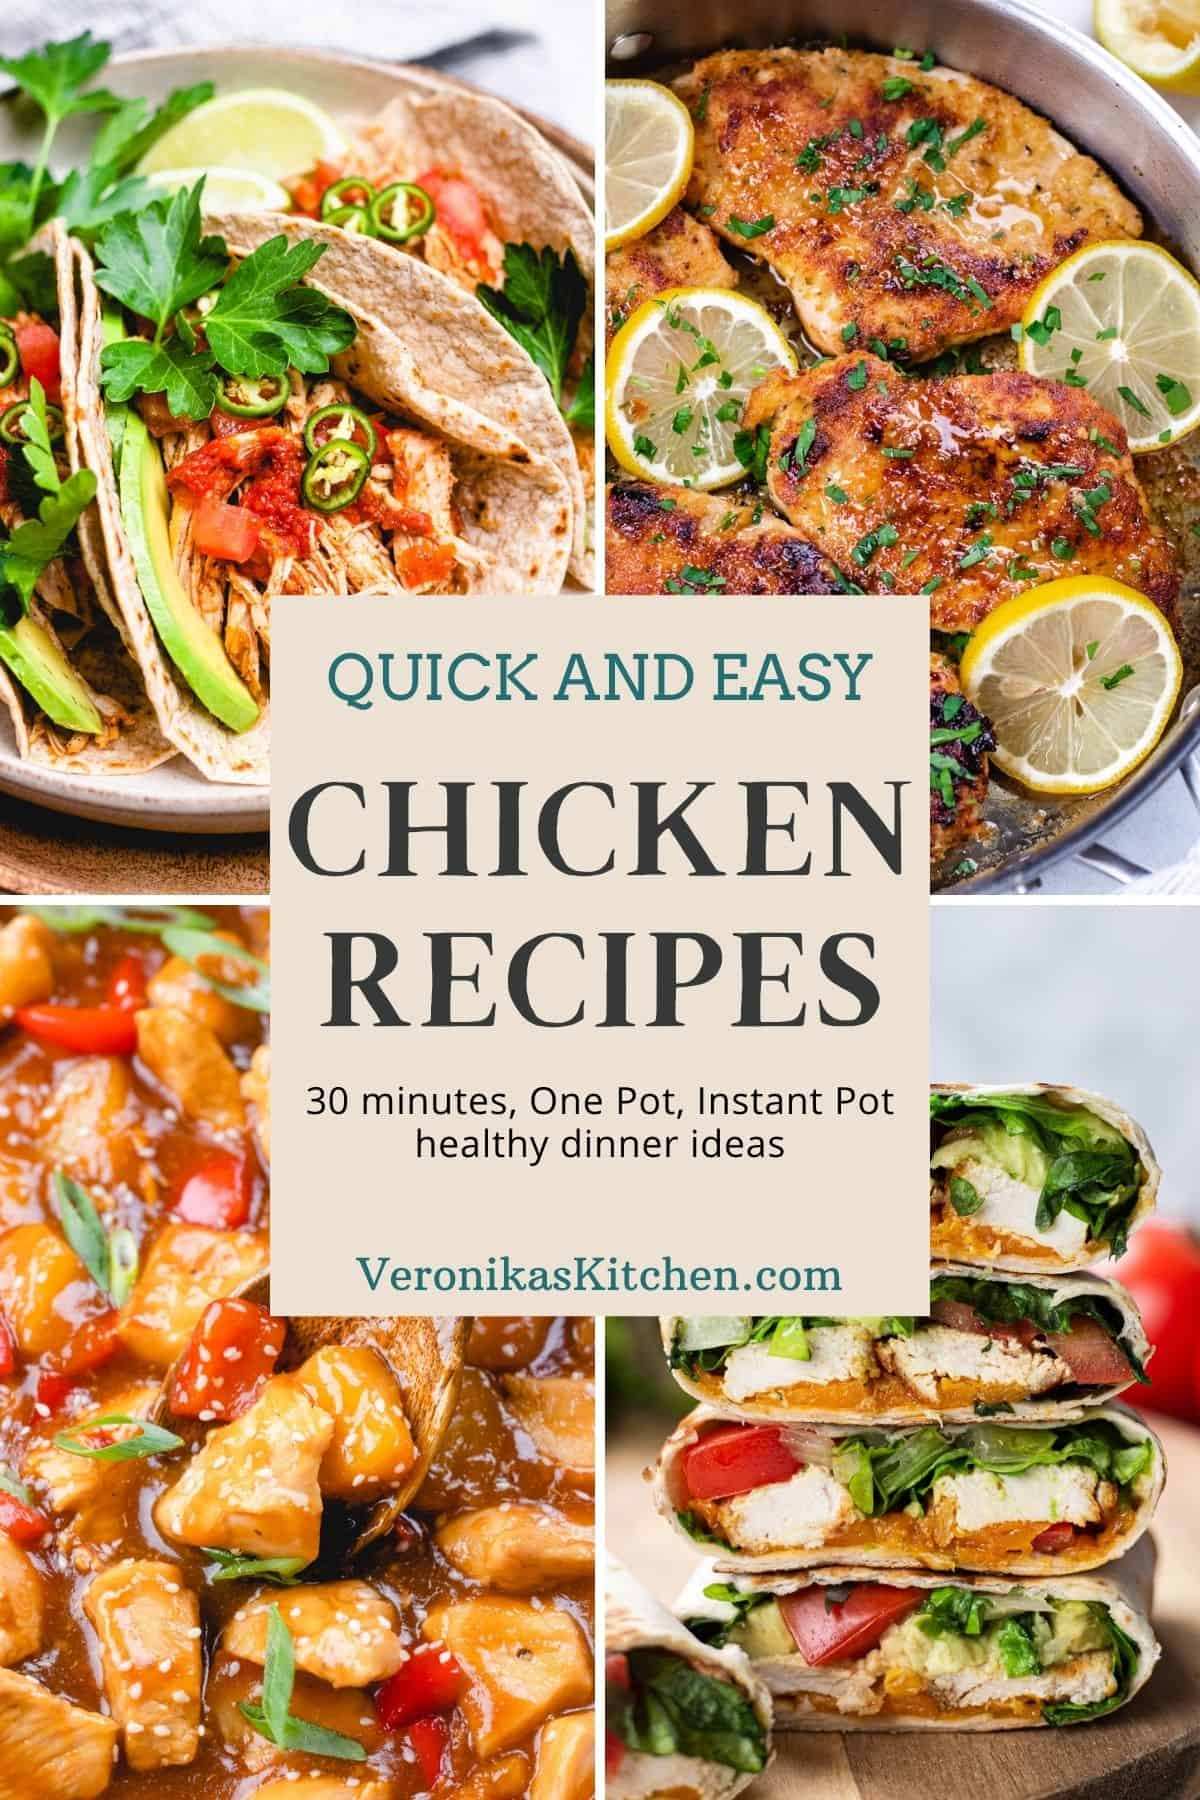 A collage of four chicken recipes with text in the middle.